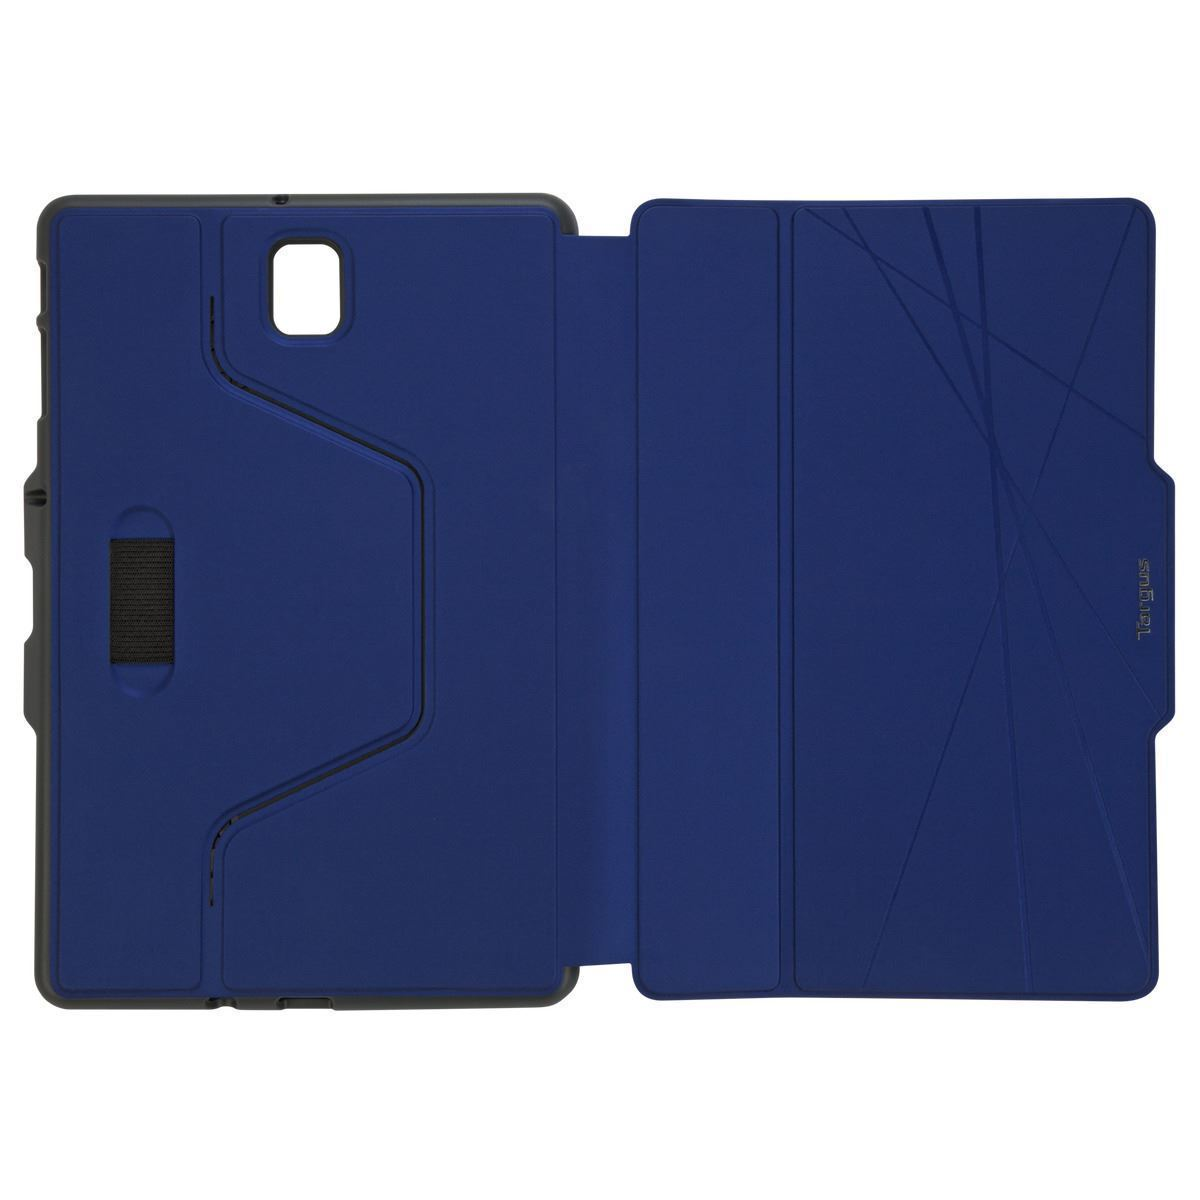 "Picture of Click-In case for Samsung Galaxy Tab S4 10.5"" (2018) - Blue"